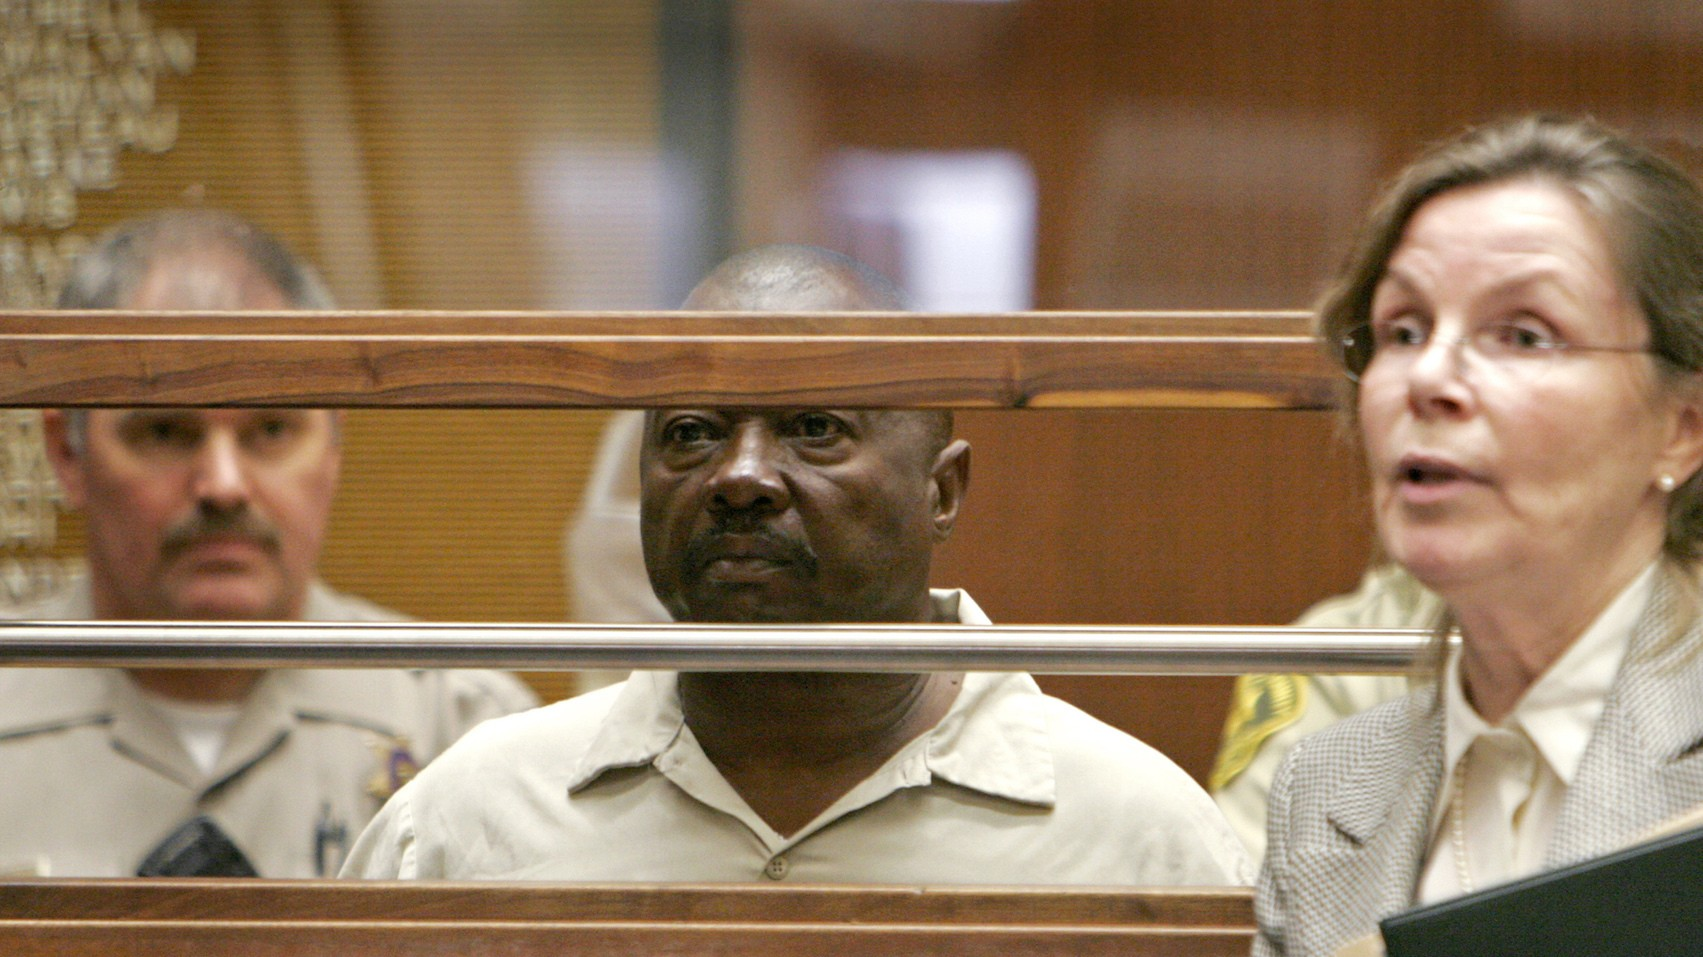 Los Angeles Jury Says 'Grim Sleeper' Serial Killer Deserves the Death Penalty